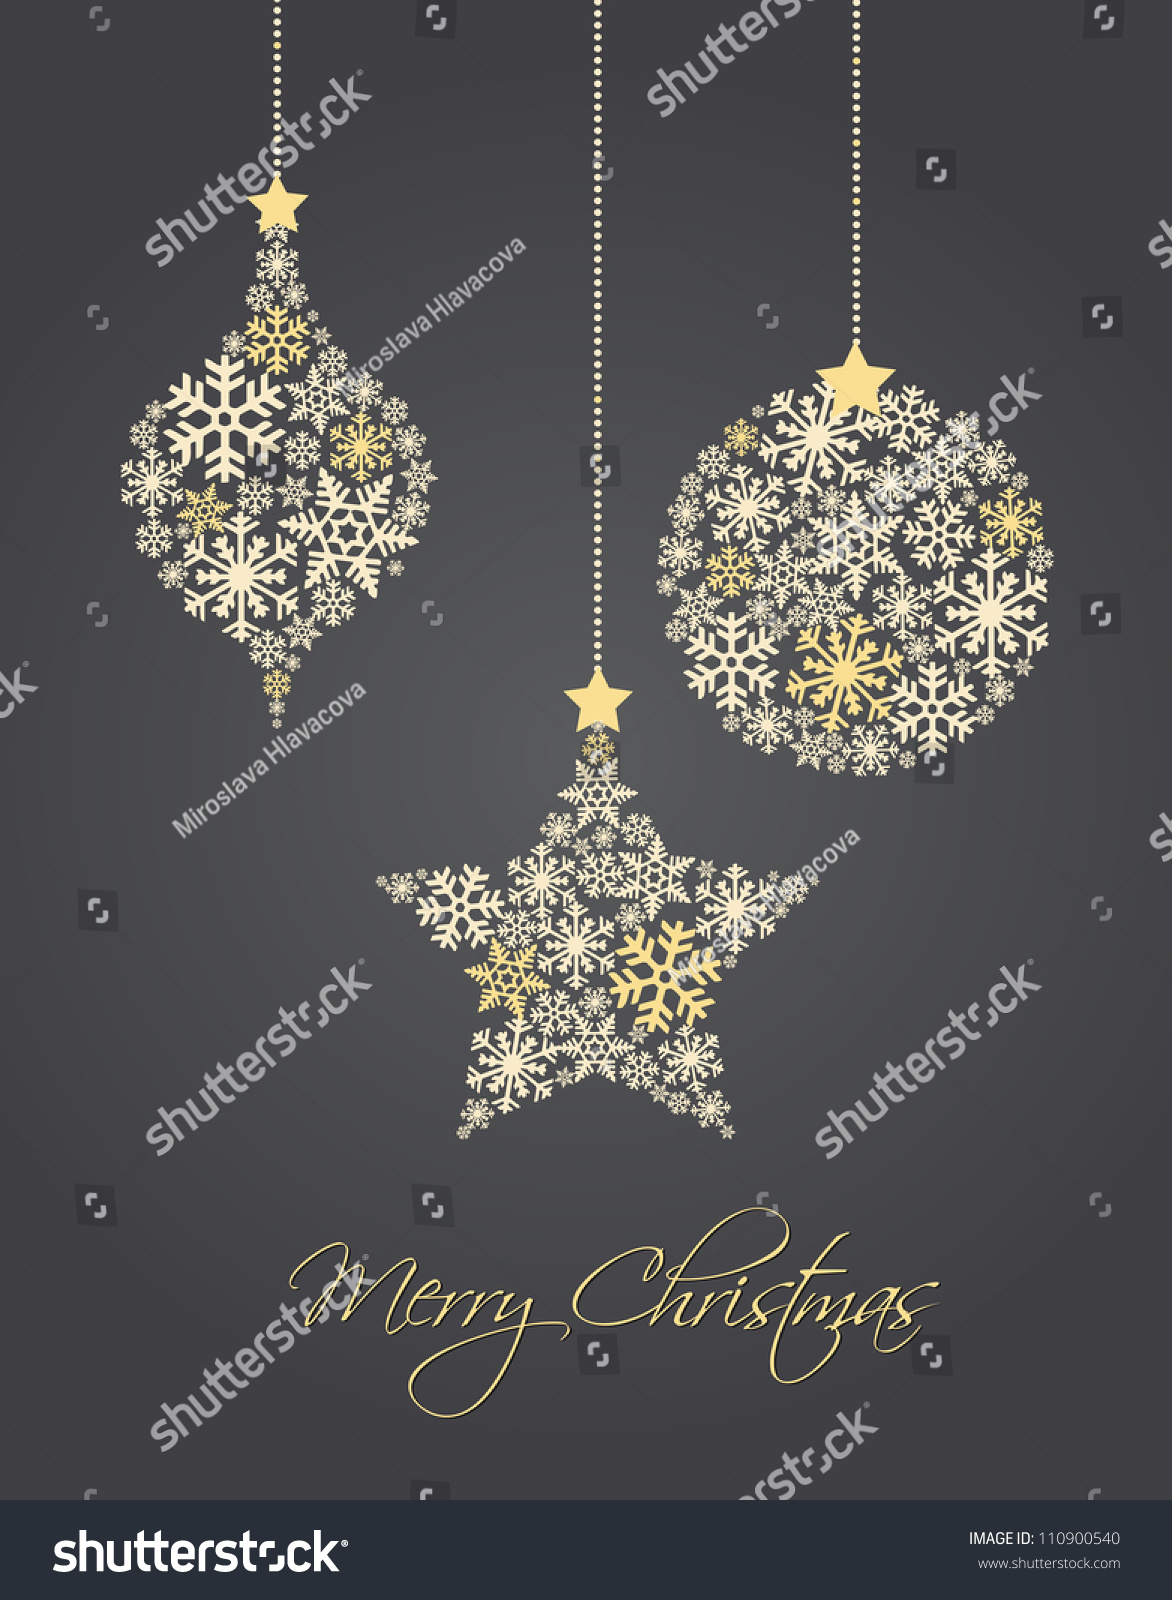 Snowflakes ornaments - Save To A Lightbox